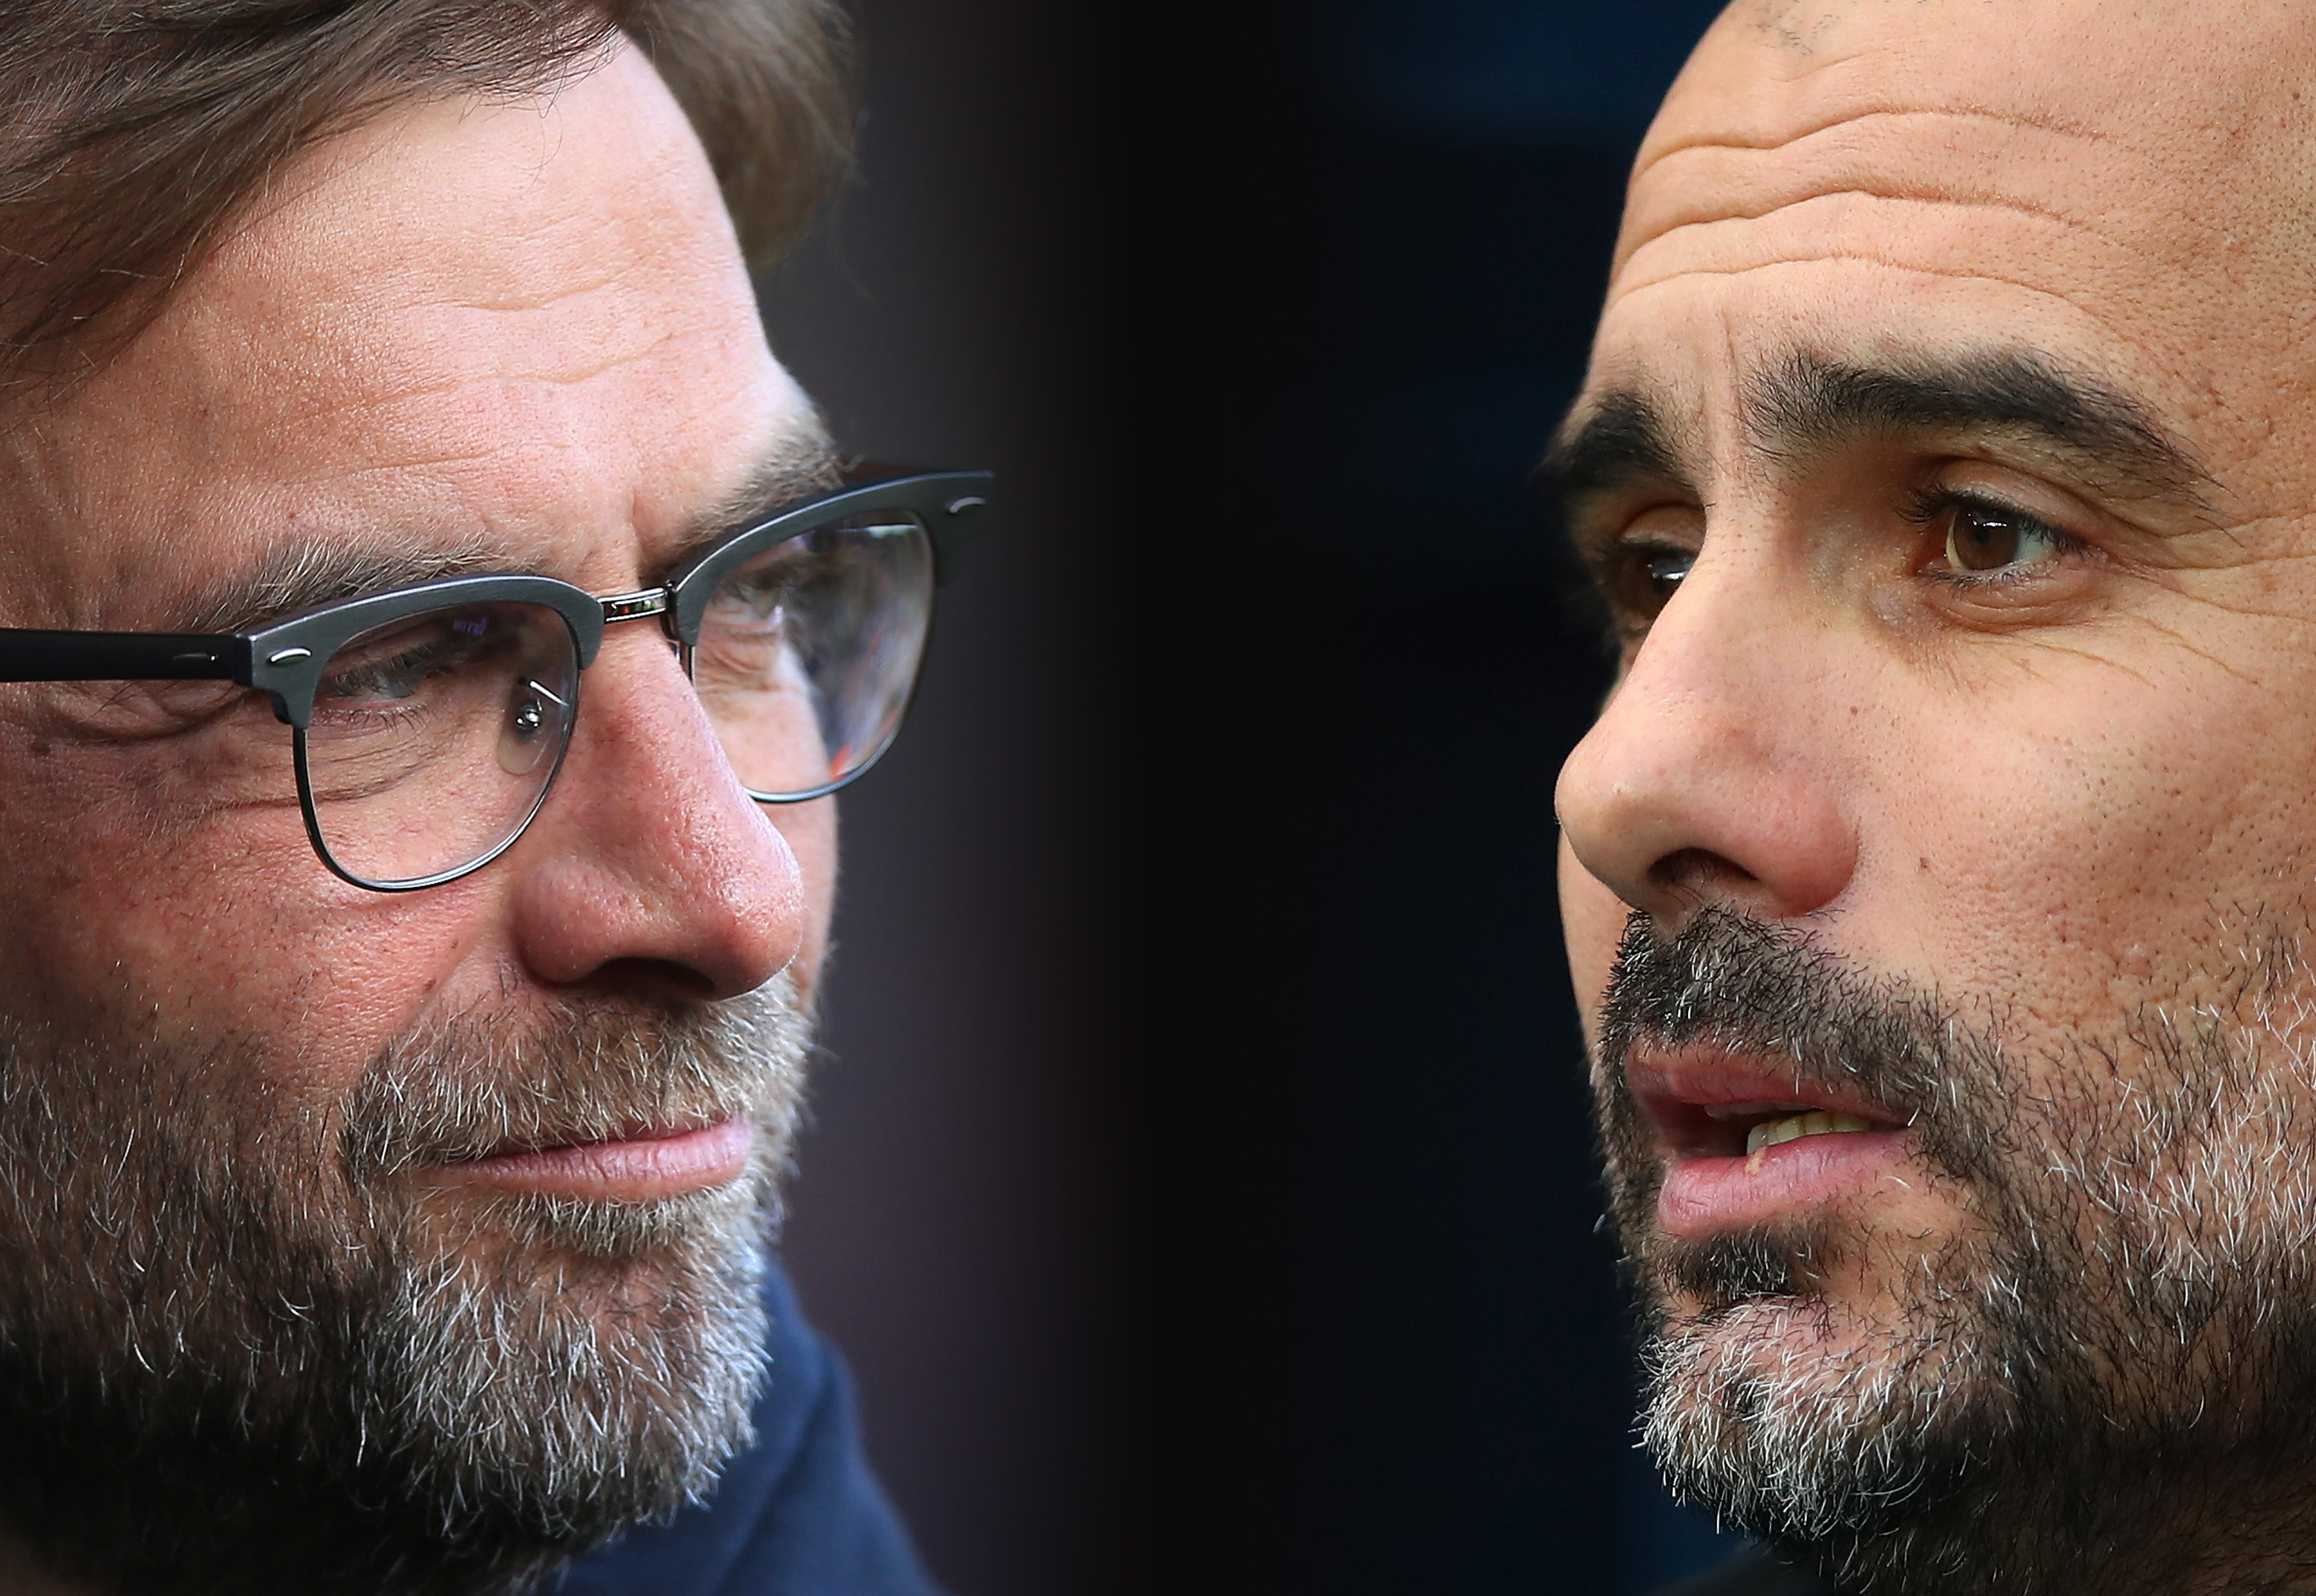 Pep Guardiola hits back at Klopp over extended break jibe: 'I thought Jurgen was not that type of manager'